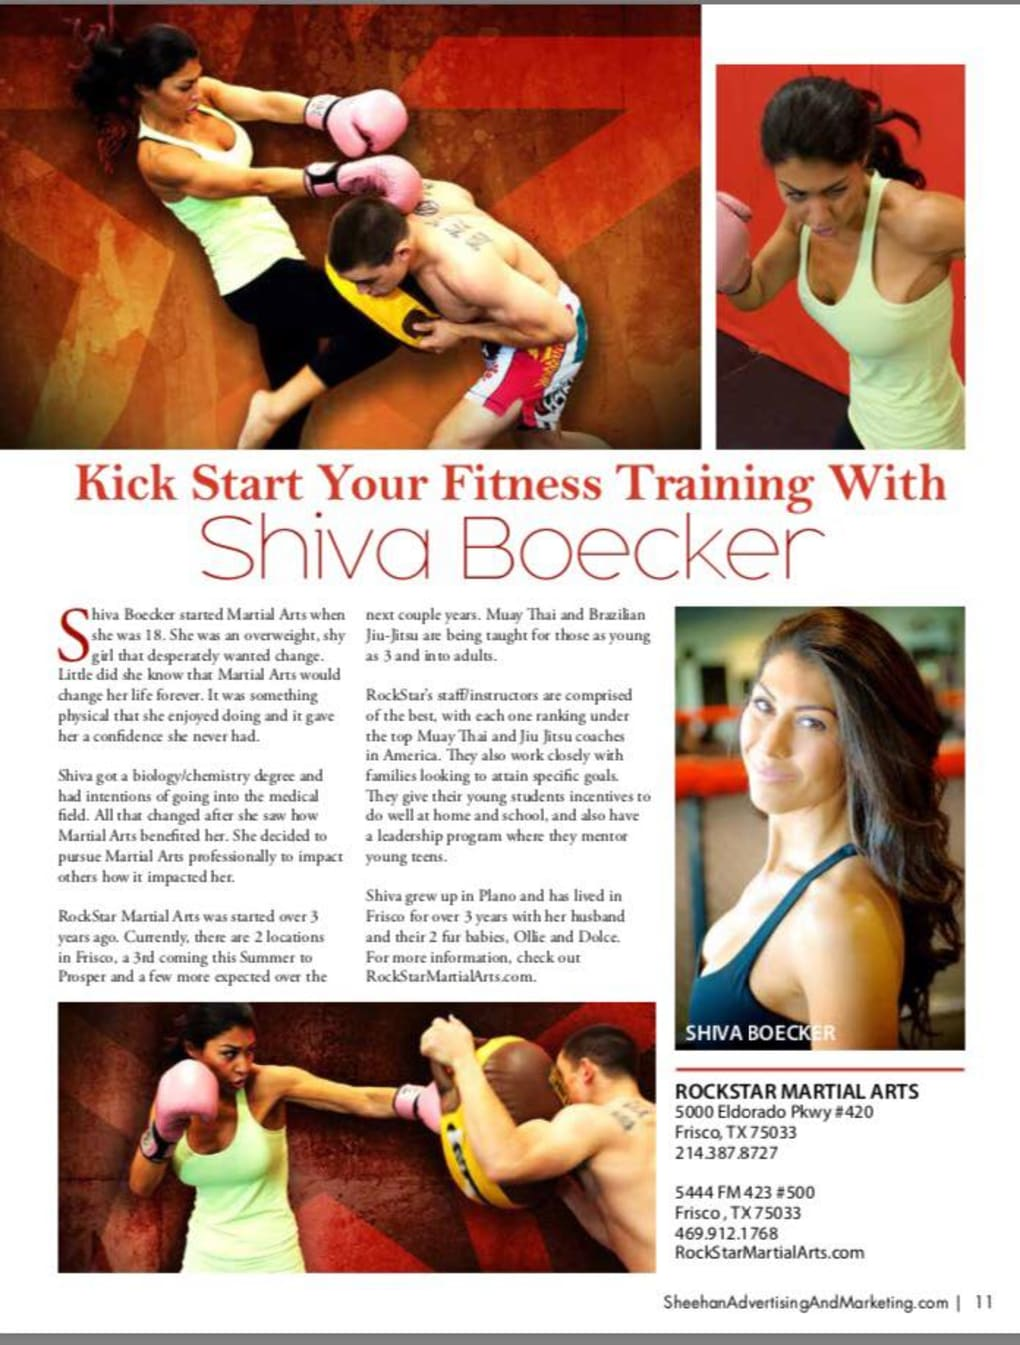 Kids Martial Arts in Frisco - Rockstar Martial Arts and Fitness - RockStar was chosen as The Best in Collin County! Check out this article in The Best in Collin County Magazine!